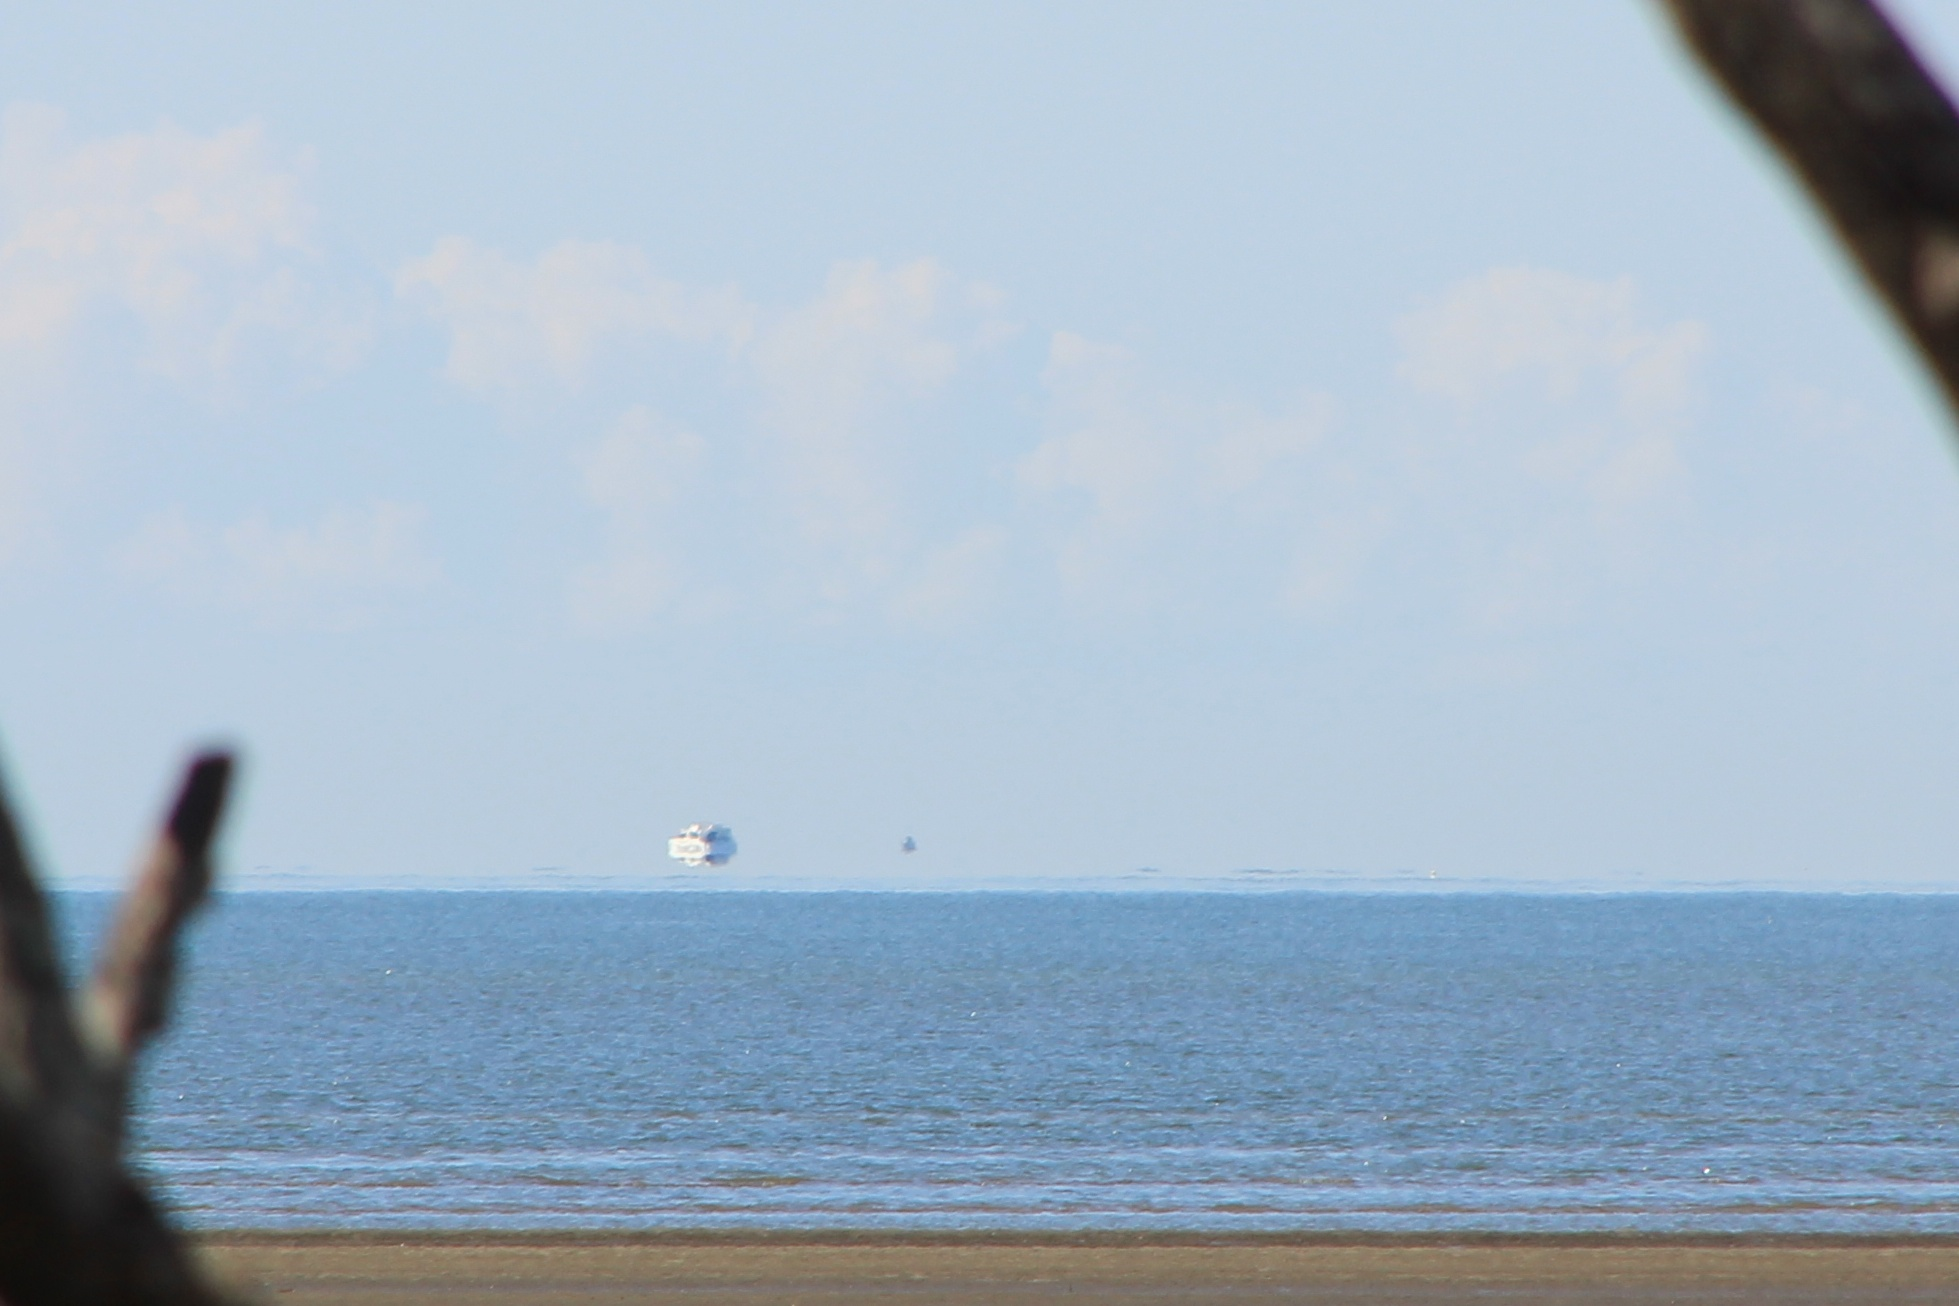 Ship appears to be hovering above sea. Courtesy Wikimedia.org by Timpaanen